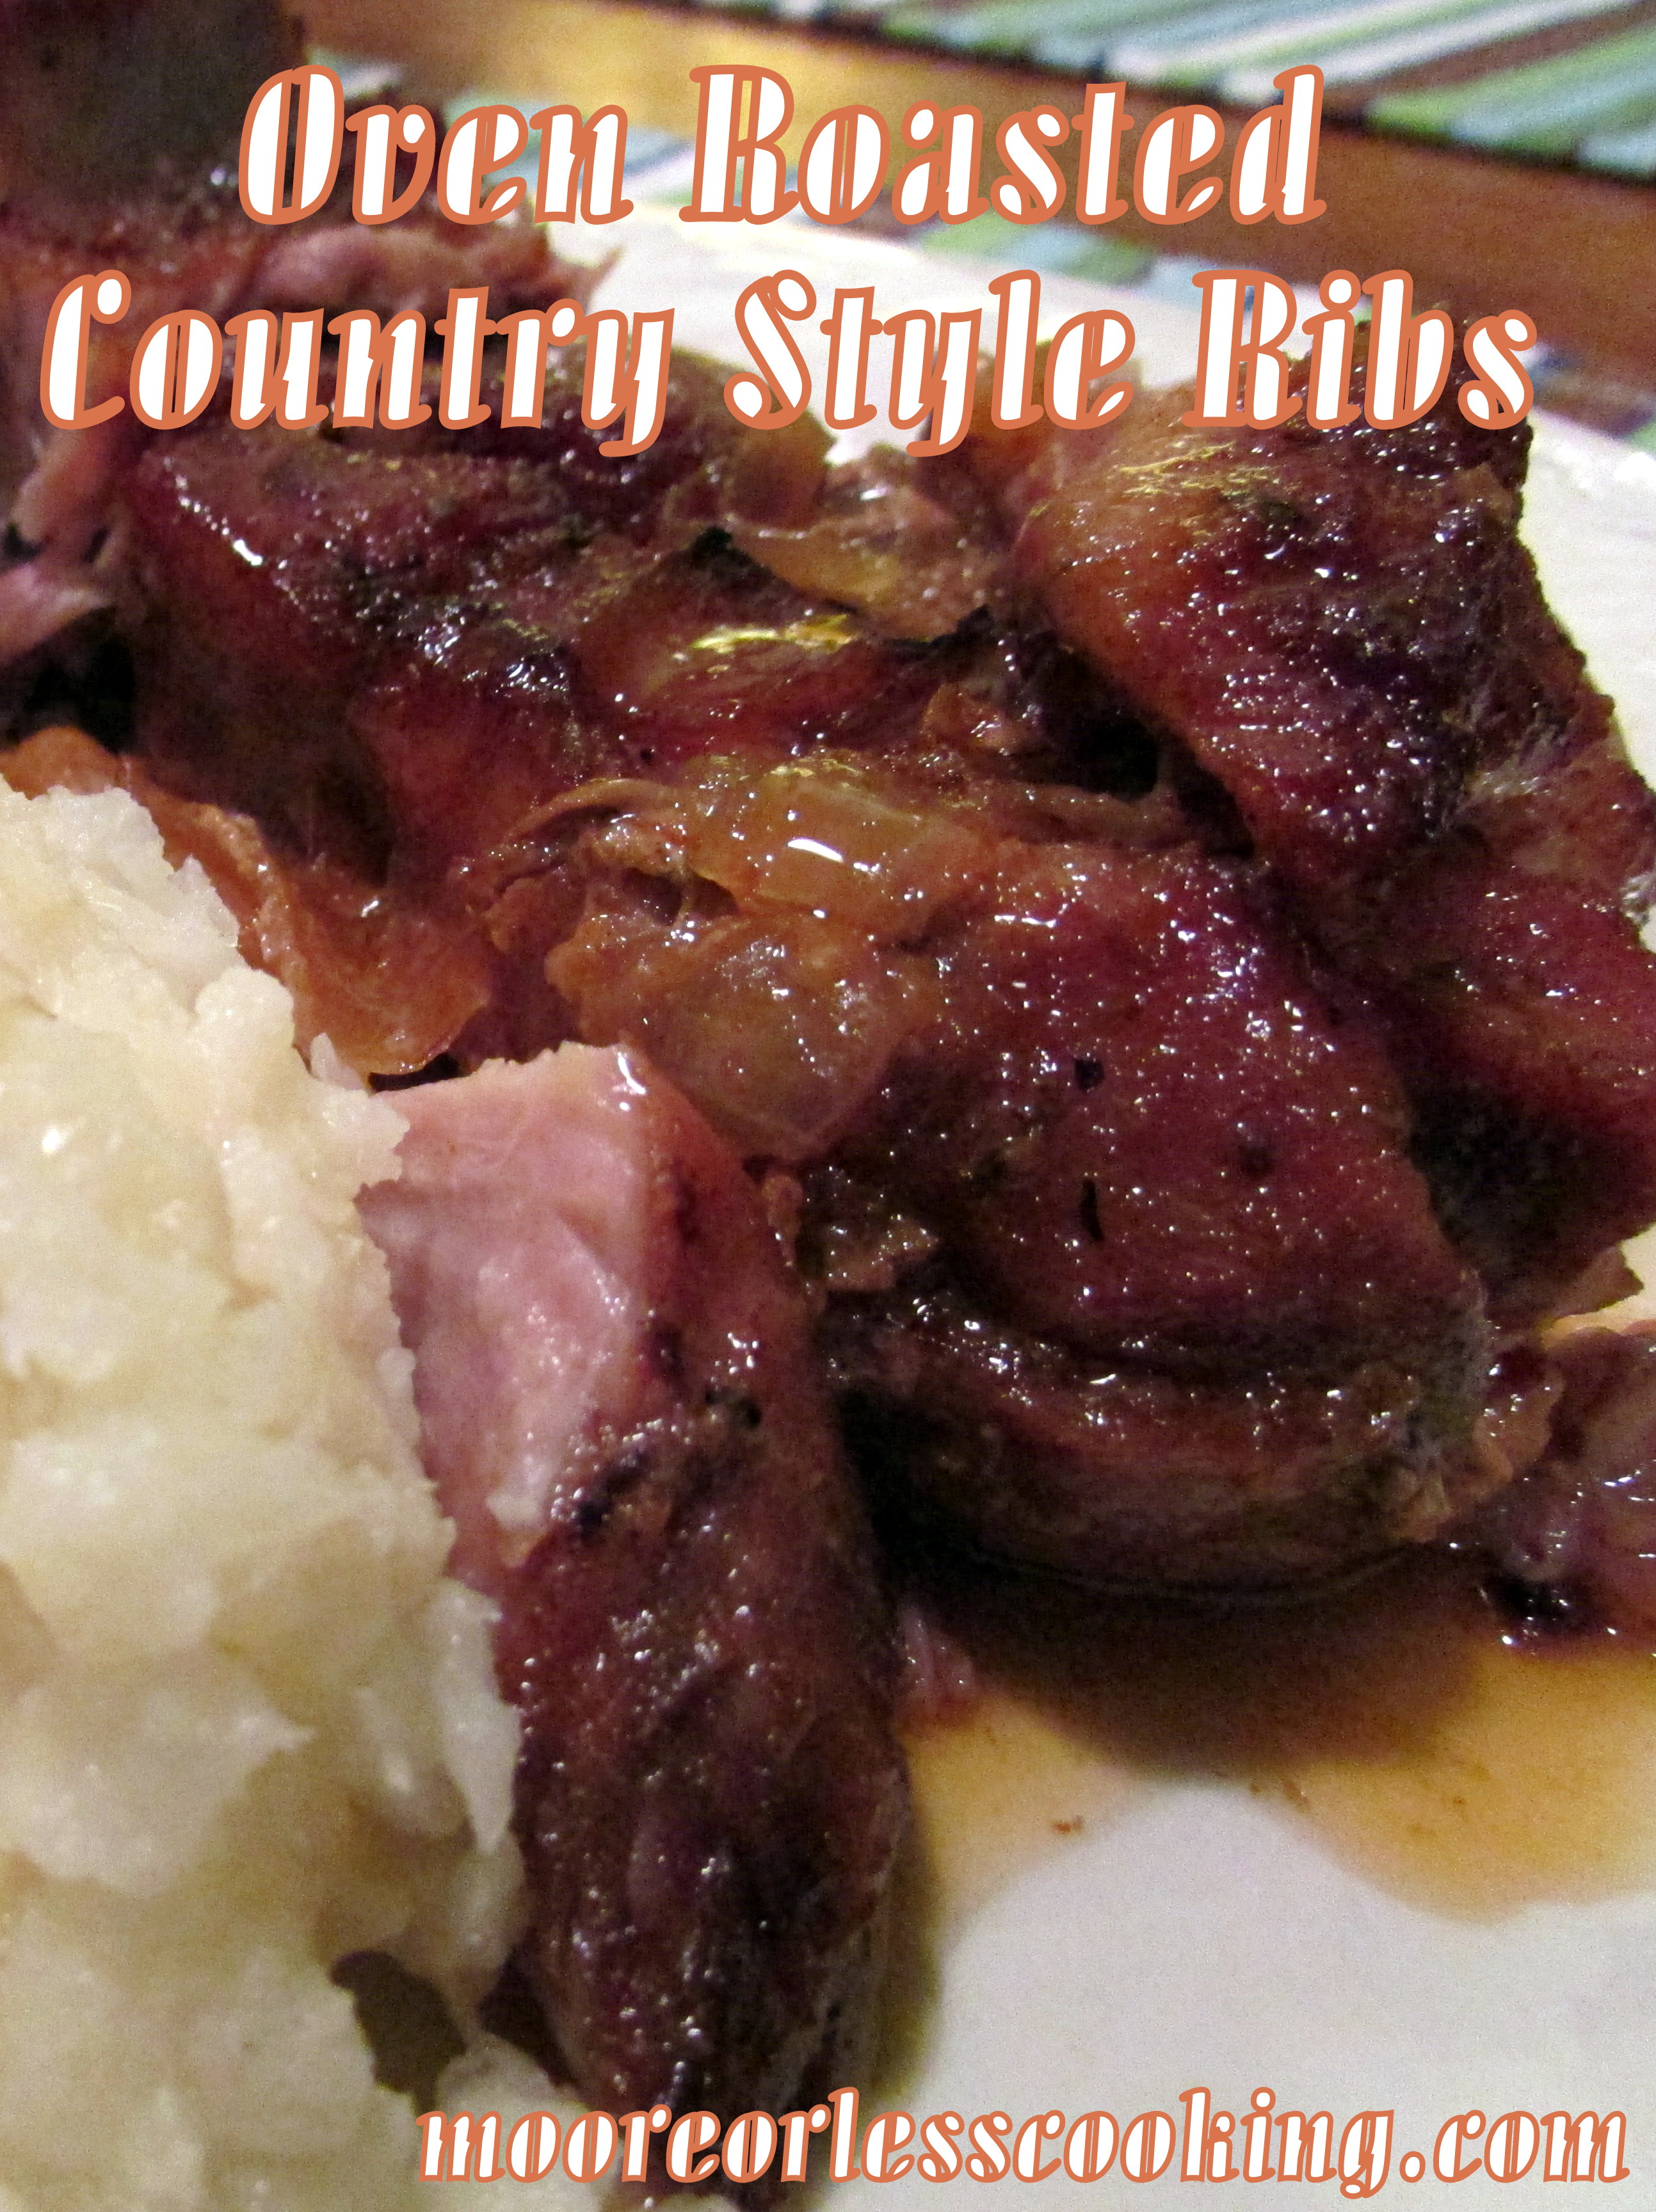 Oven Roasted Country Style Ribs and a Cookbook and Spice Giveaway